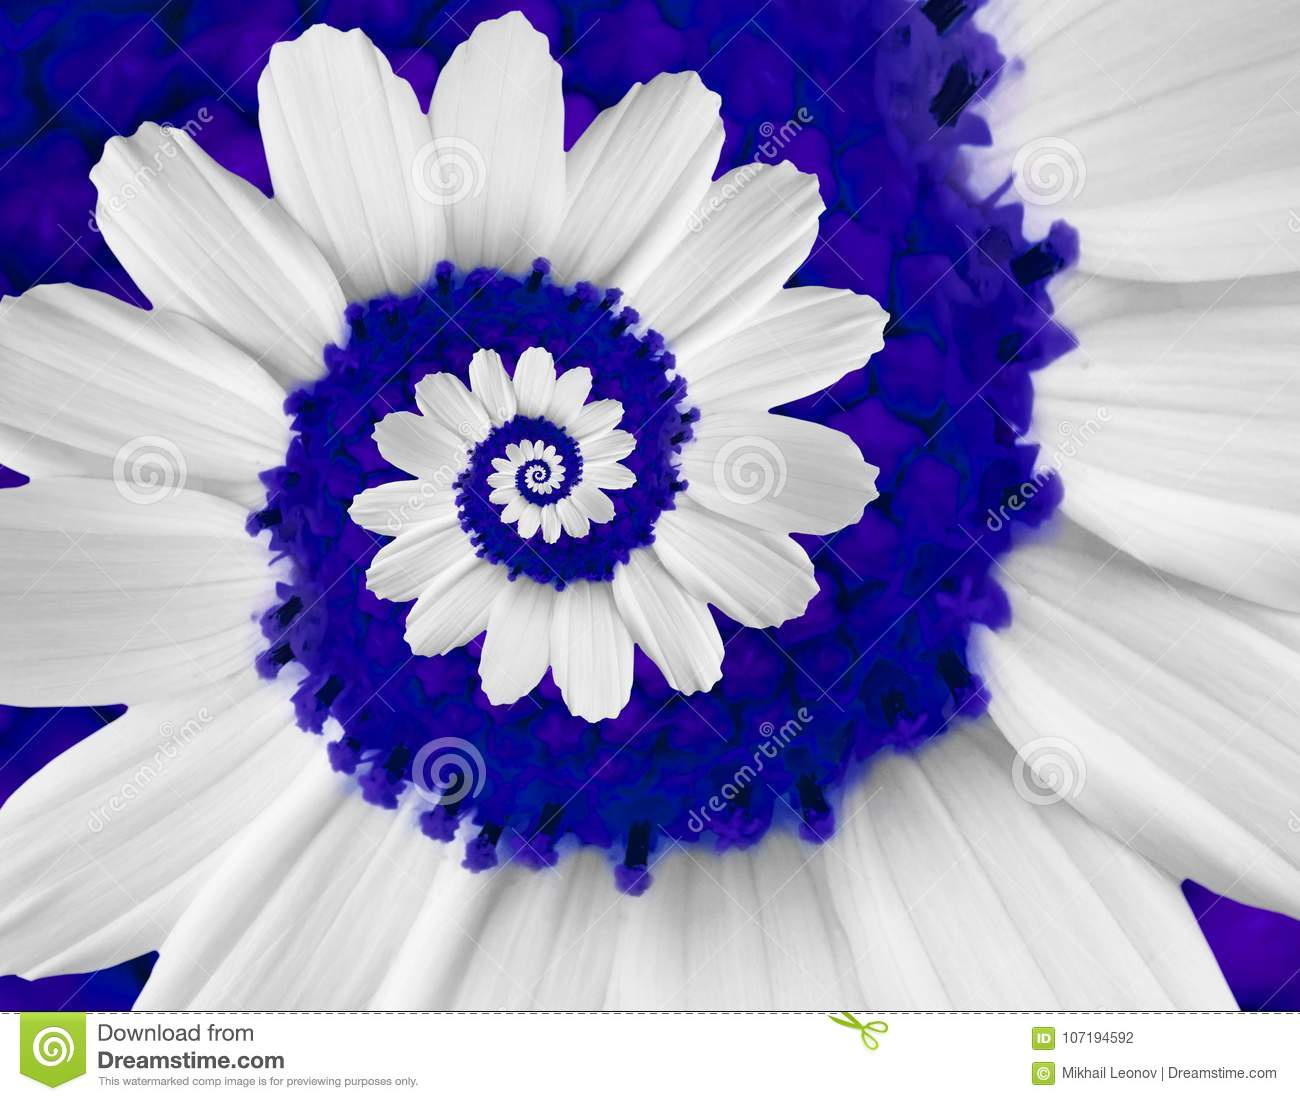 White navy camomile daisy cosmos kosmeya flower spiral abstract fractal effect pattern background White flower spiral abstract